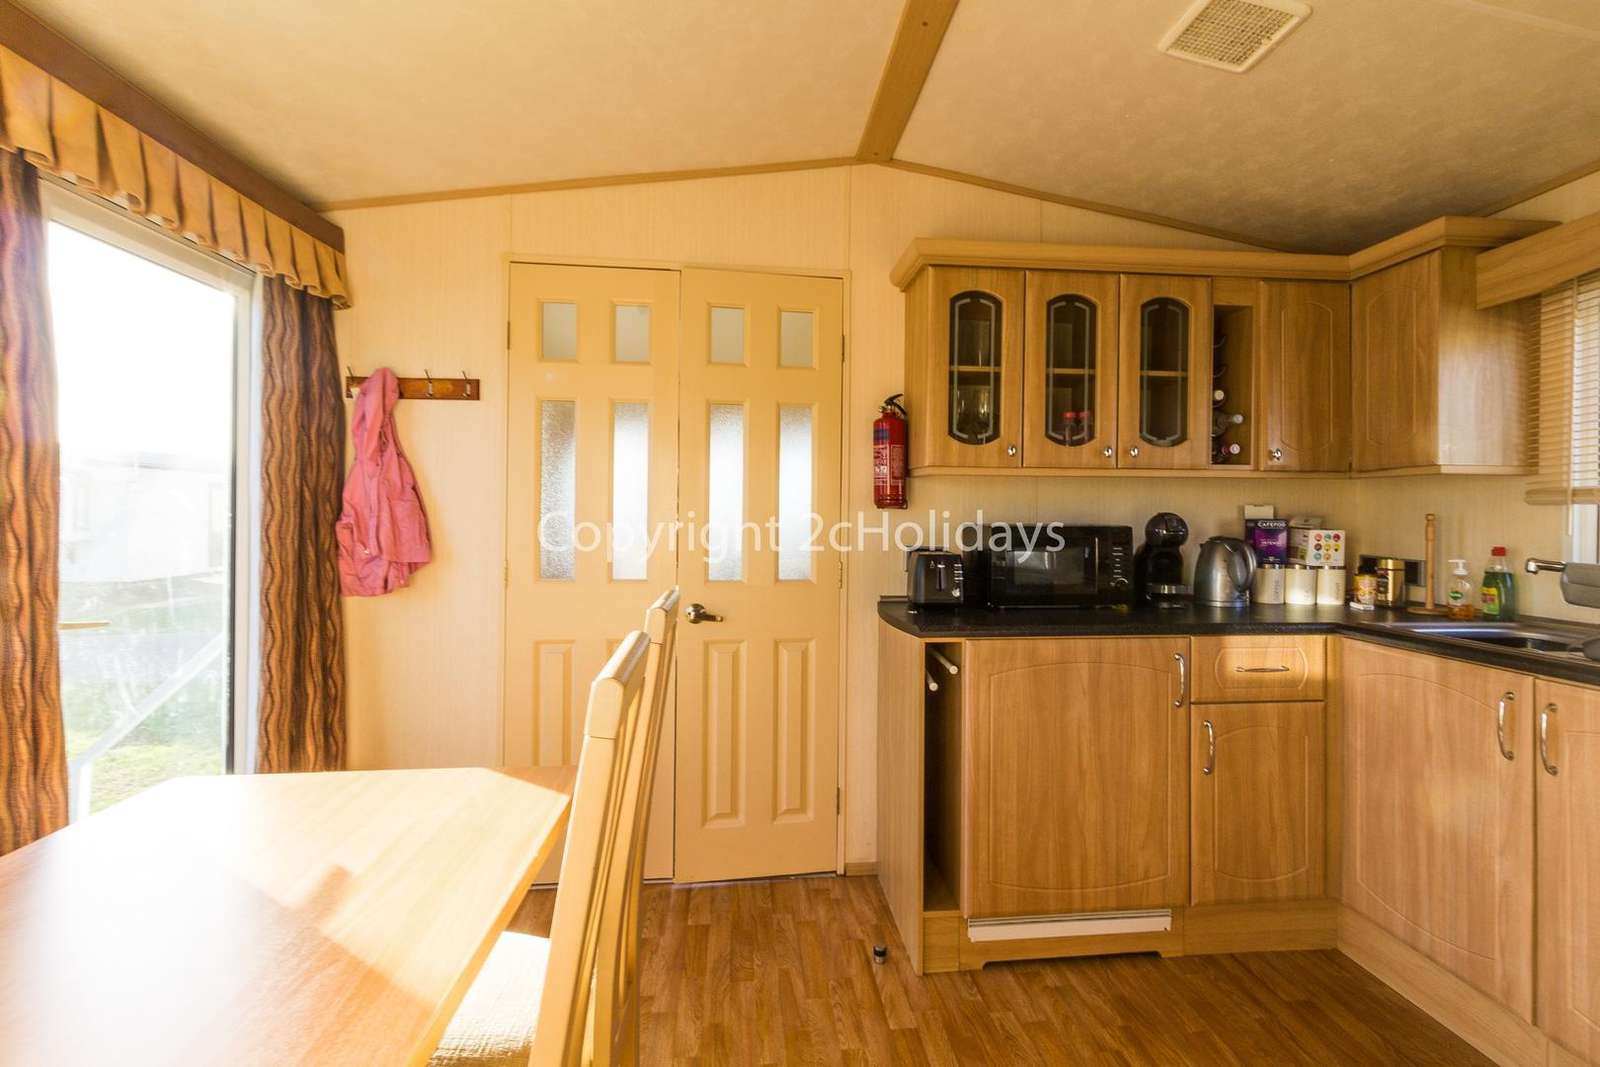 California Cliffs Holiday Park, in Scratby. Perfect for families.